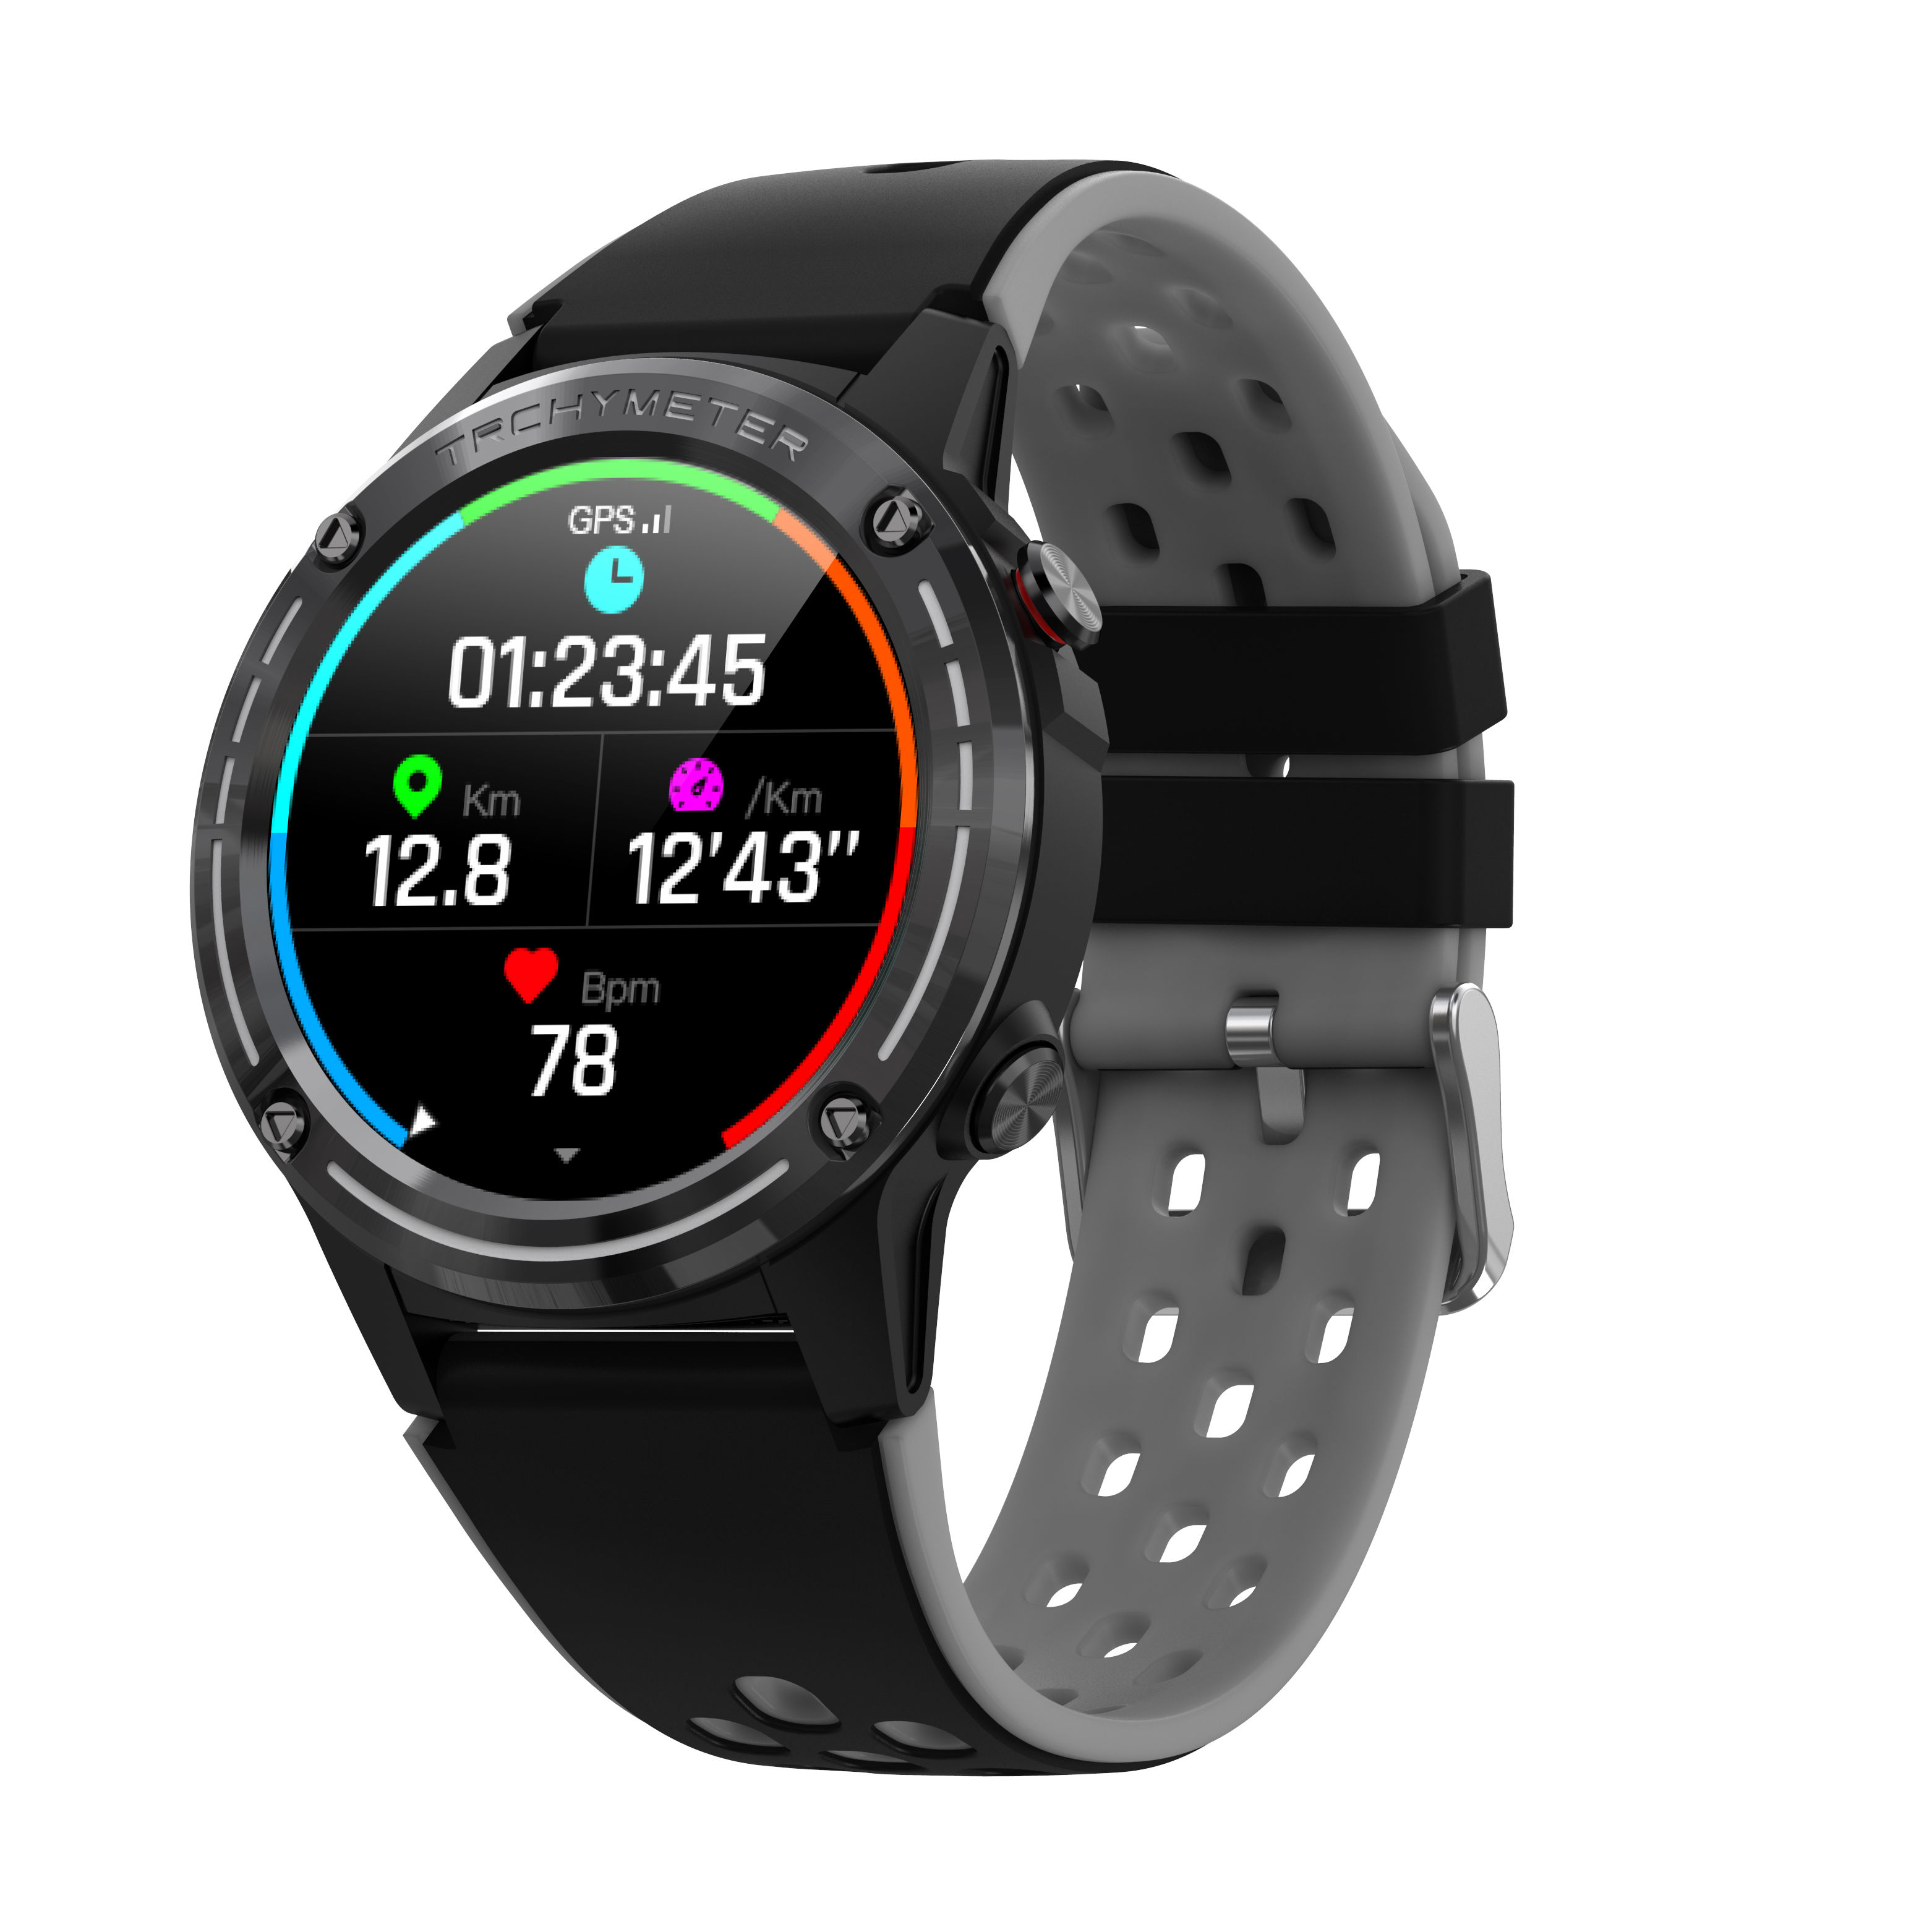 M6 watch Smart Watches GPS Altimeter Barometer Compass Heart Rate Fitness Tracker Smartwatch Android